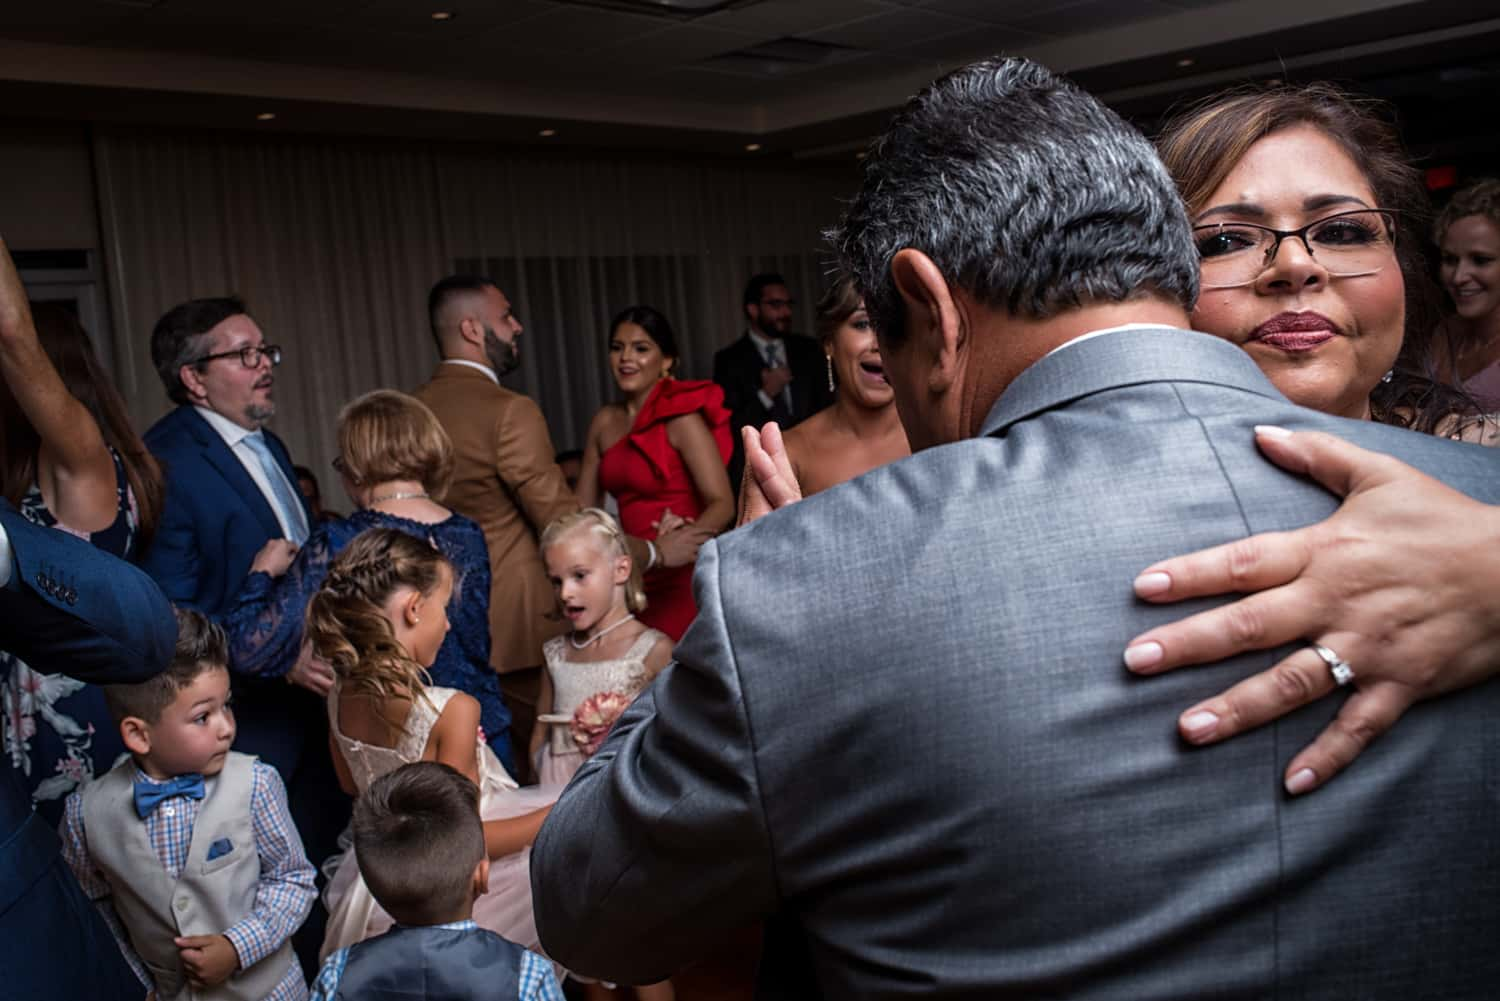 Couple dancing at wedding reception with children playing around them